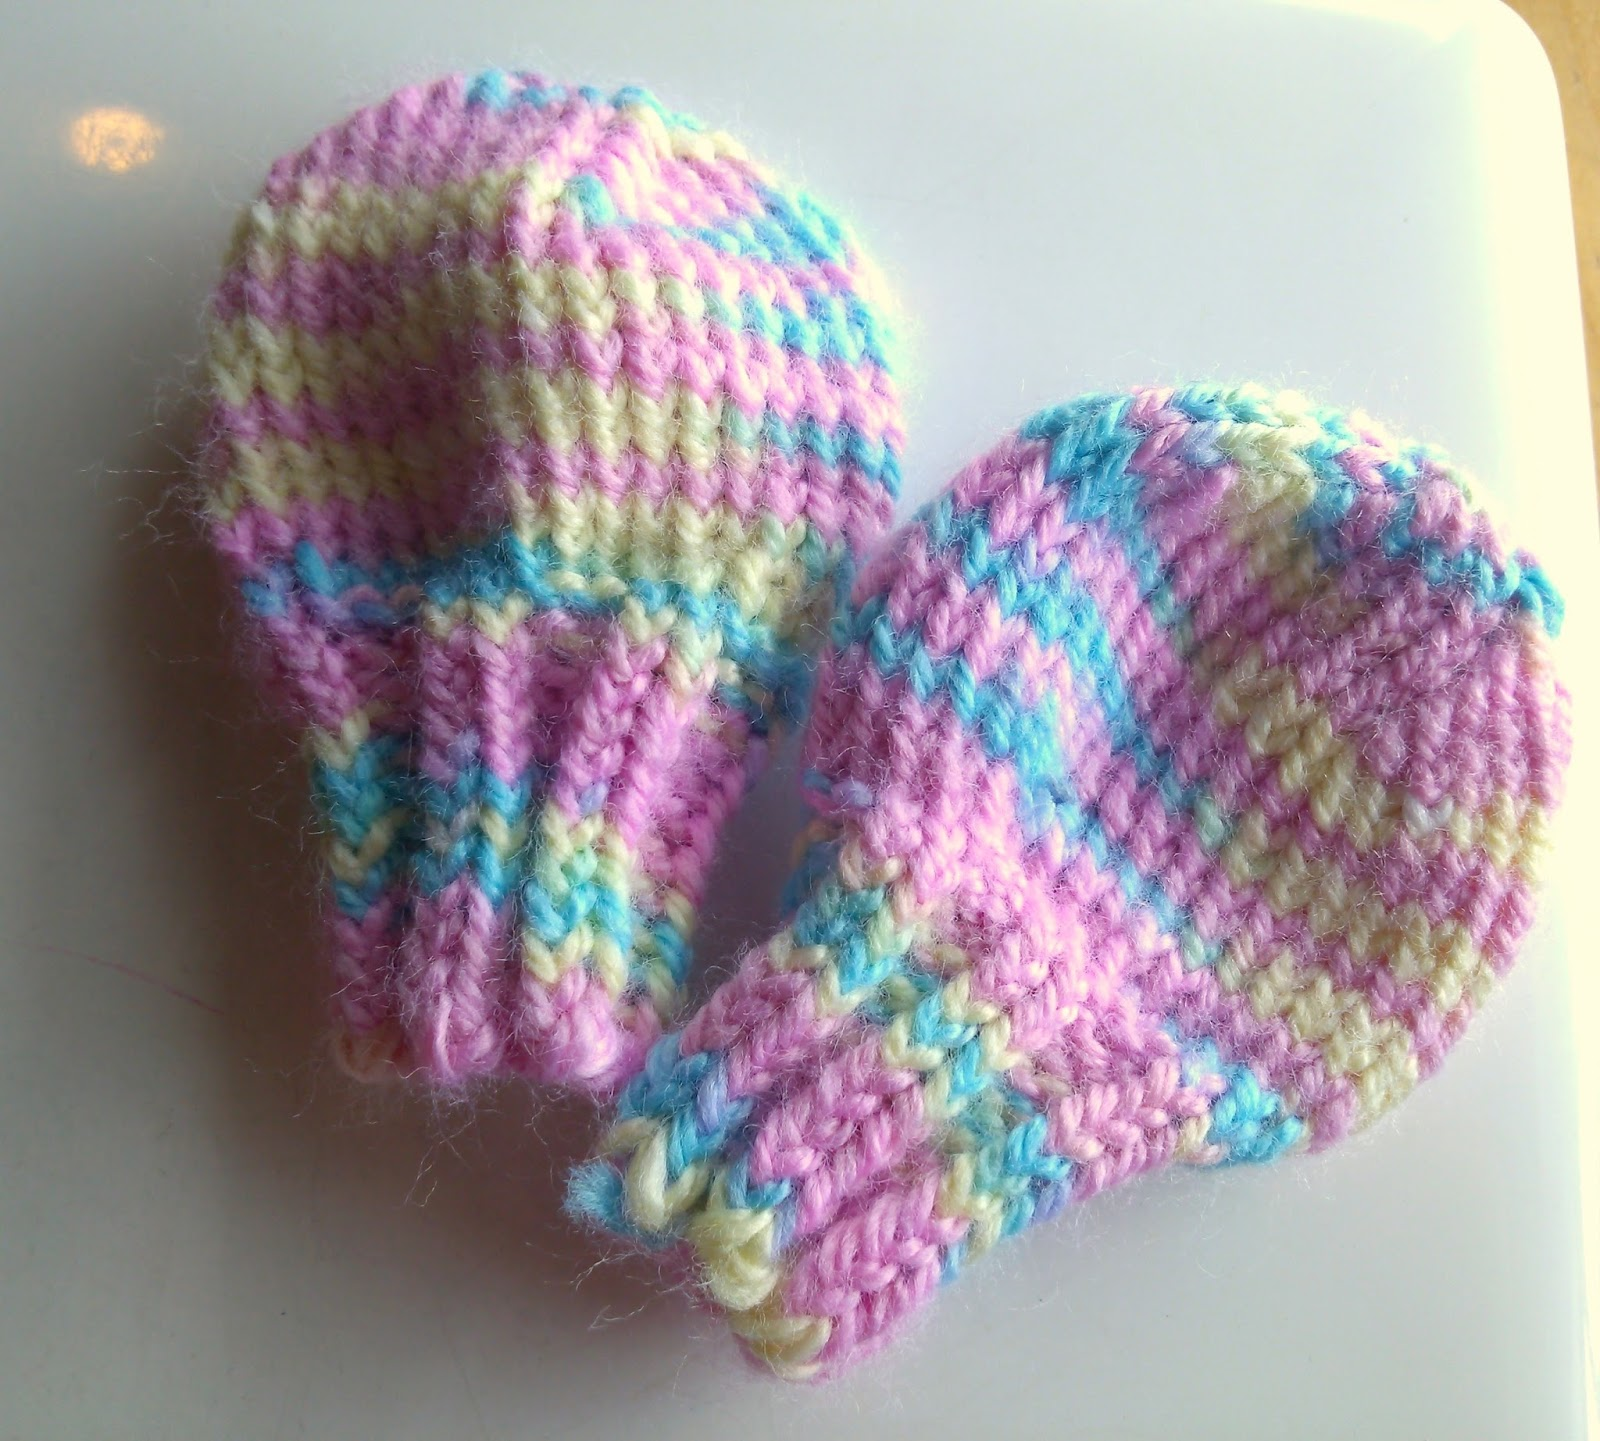 Knitting Patterns For Scratch Mittens : Newborn No Scratch Mittens knittedhome